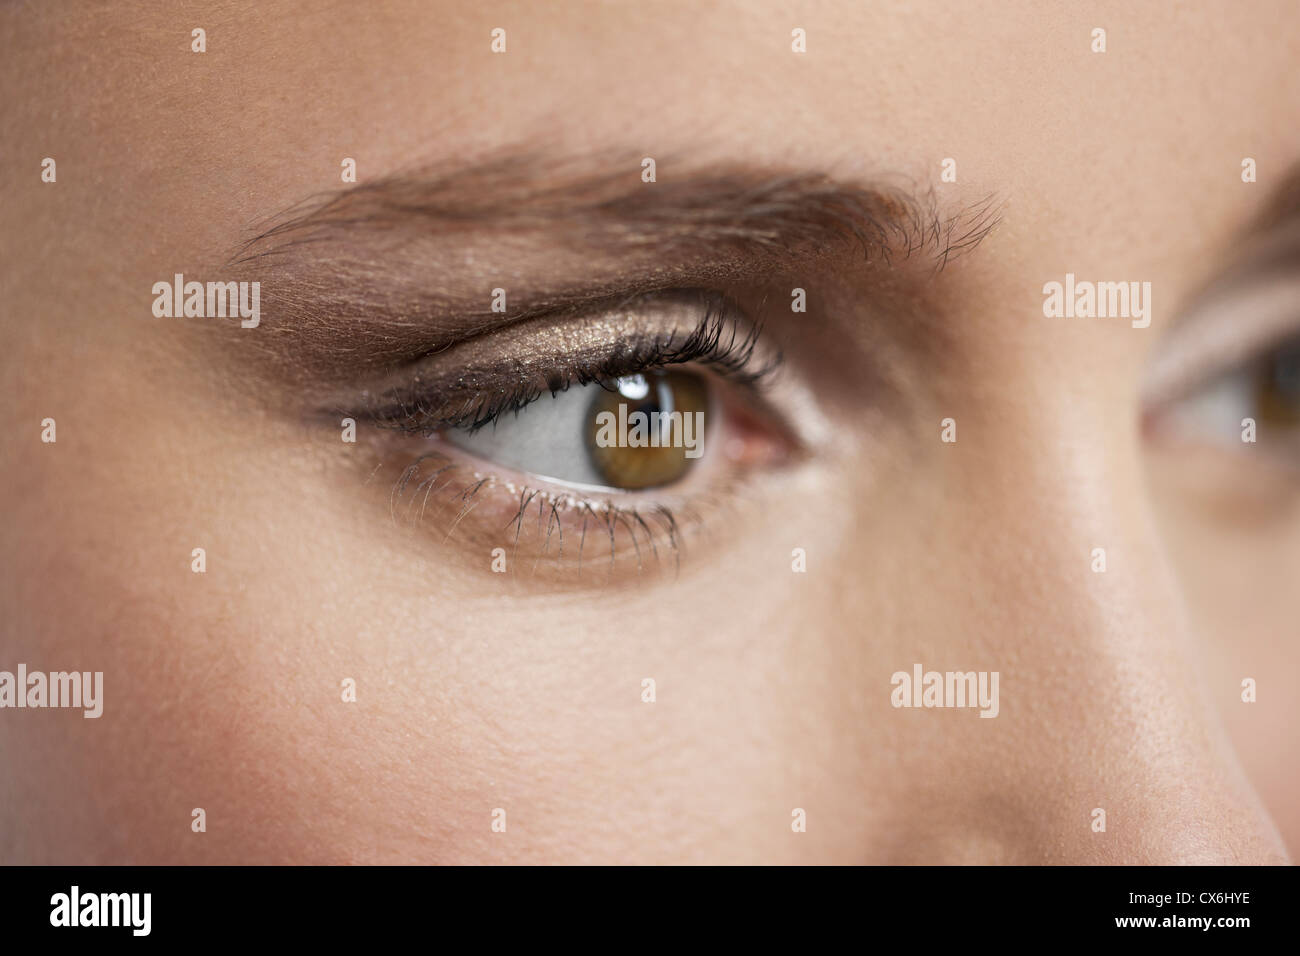 Close up of a young womans eye and eyelashes - Stock Image